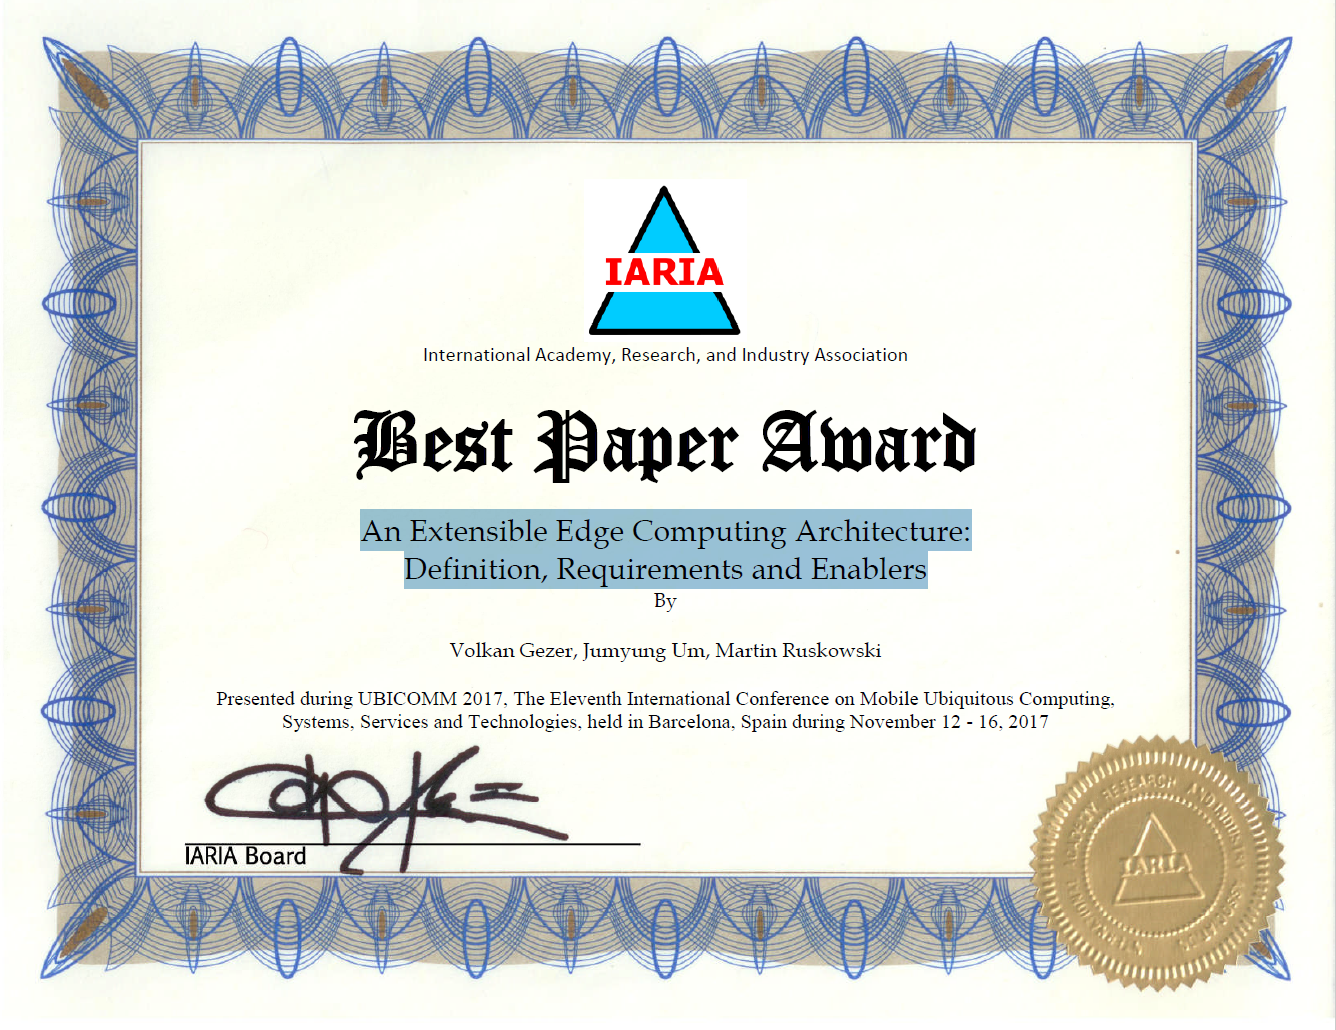 Best Paper Award received